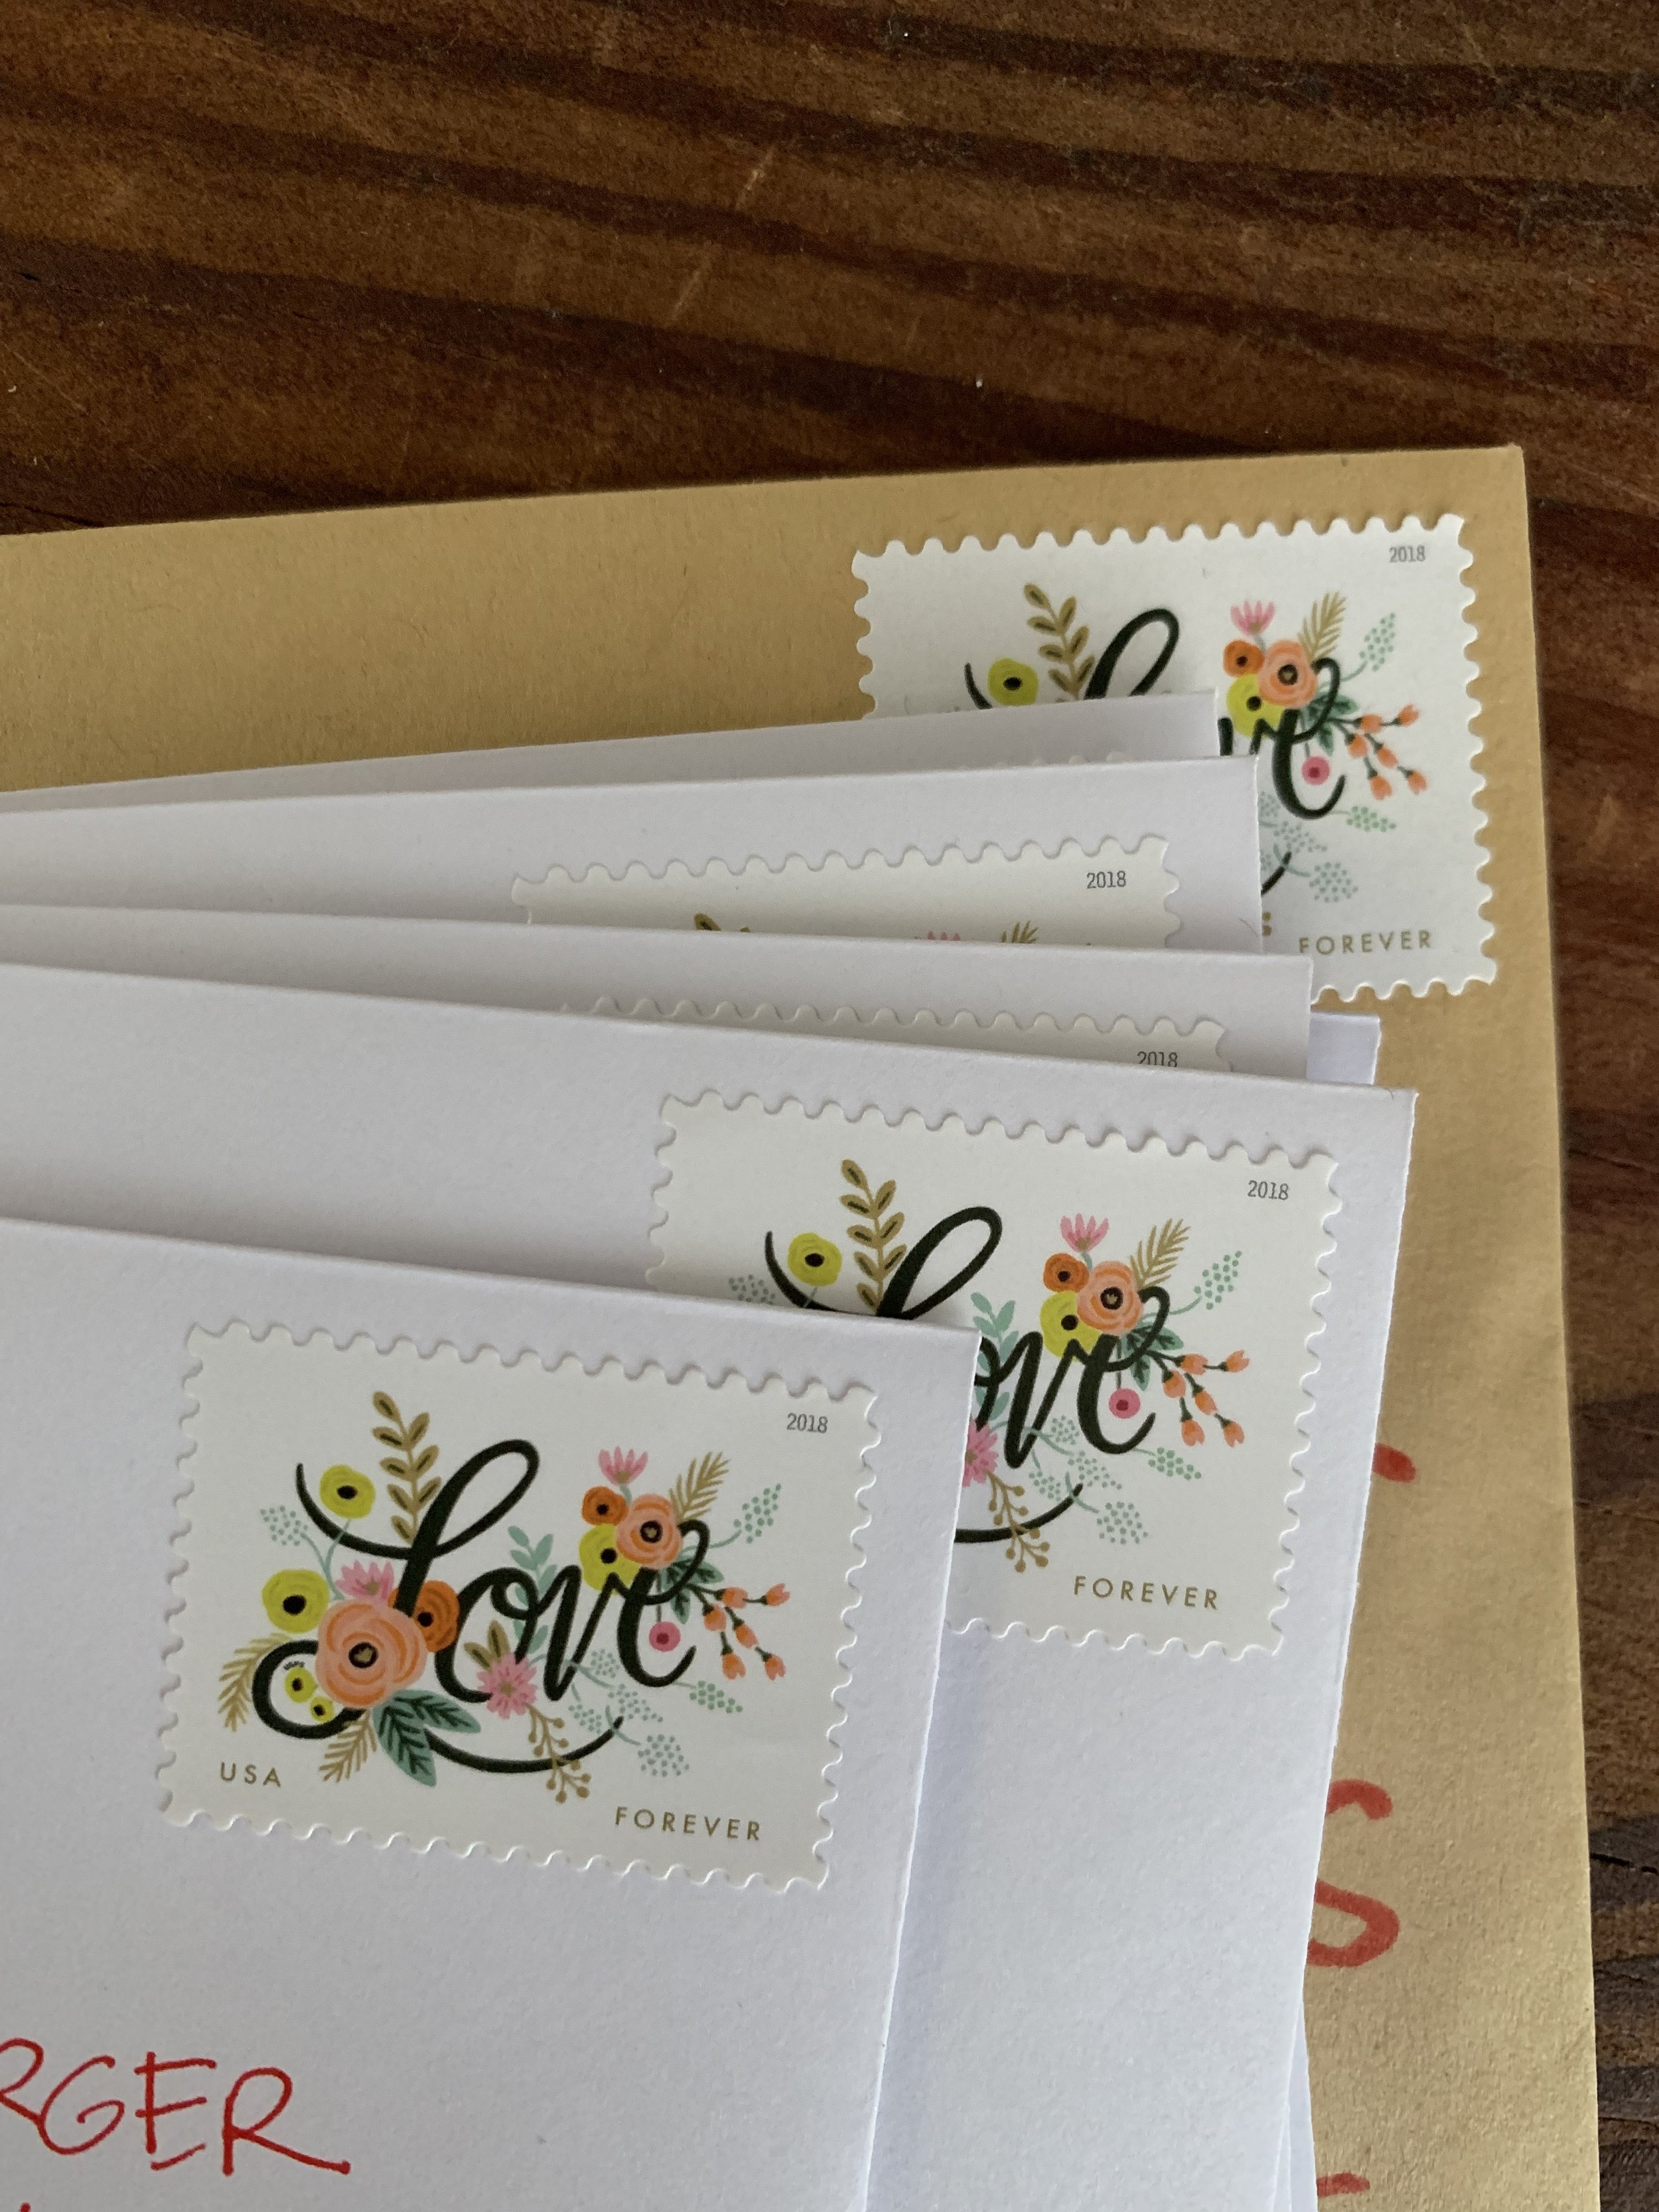 Rifle Paper Co stamps are perfect for this occasion!